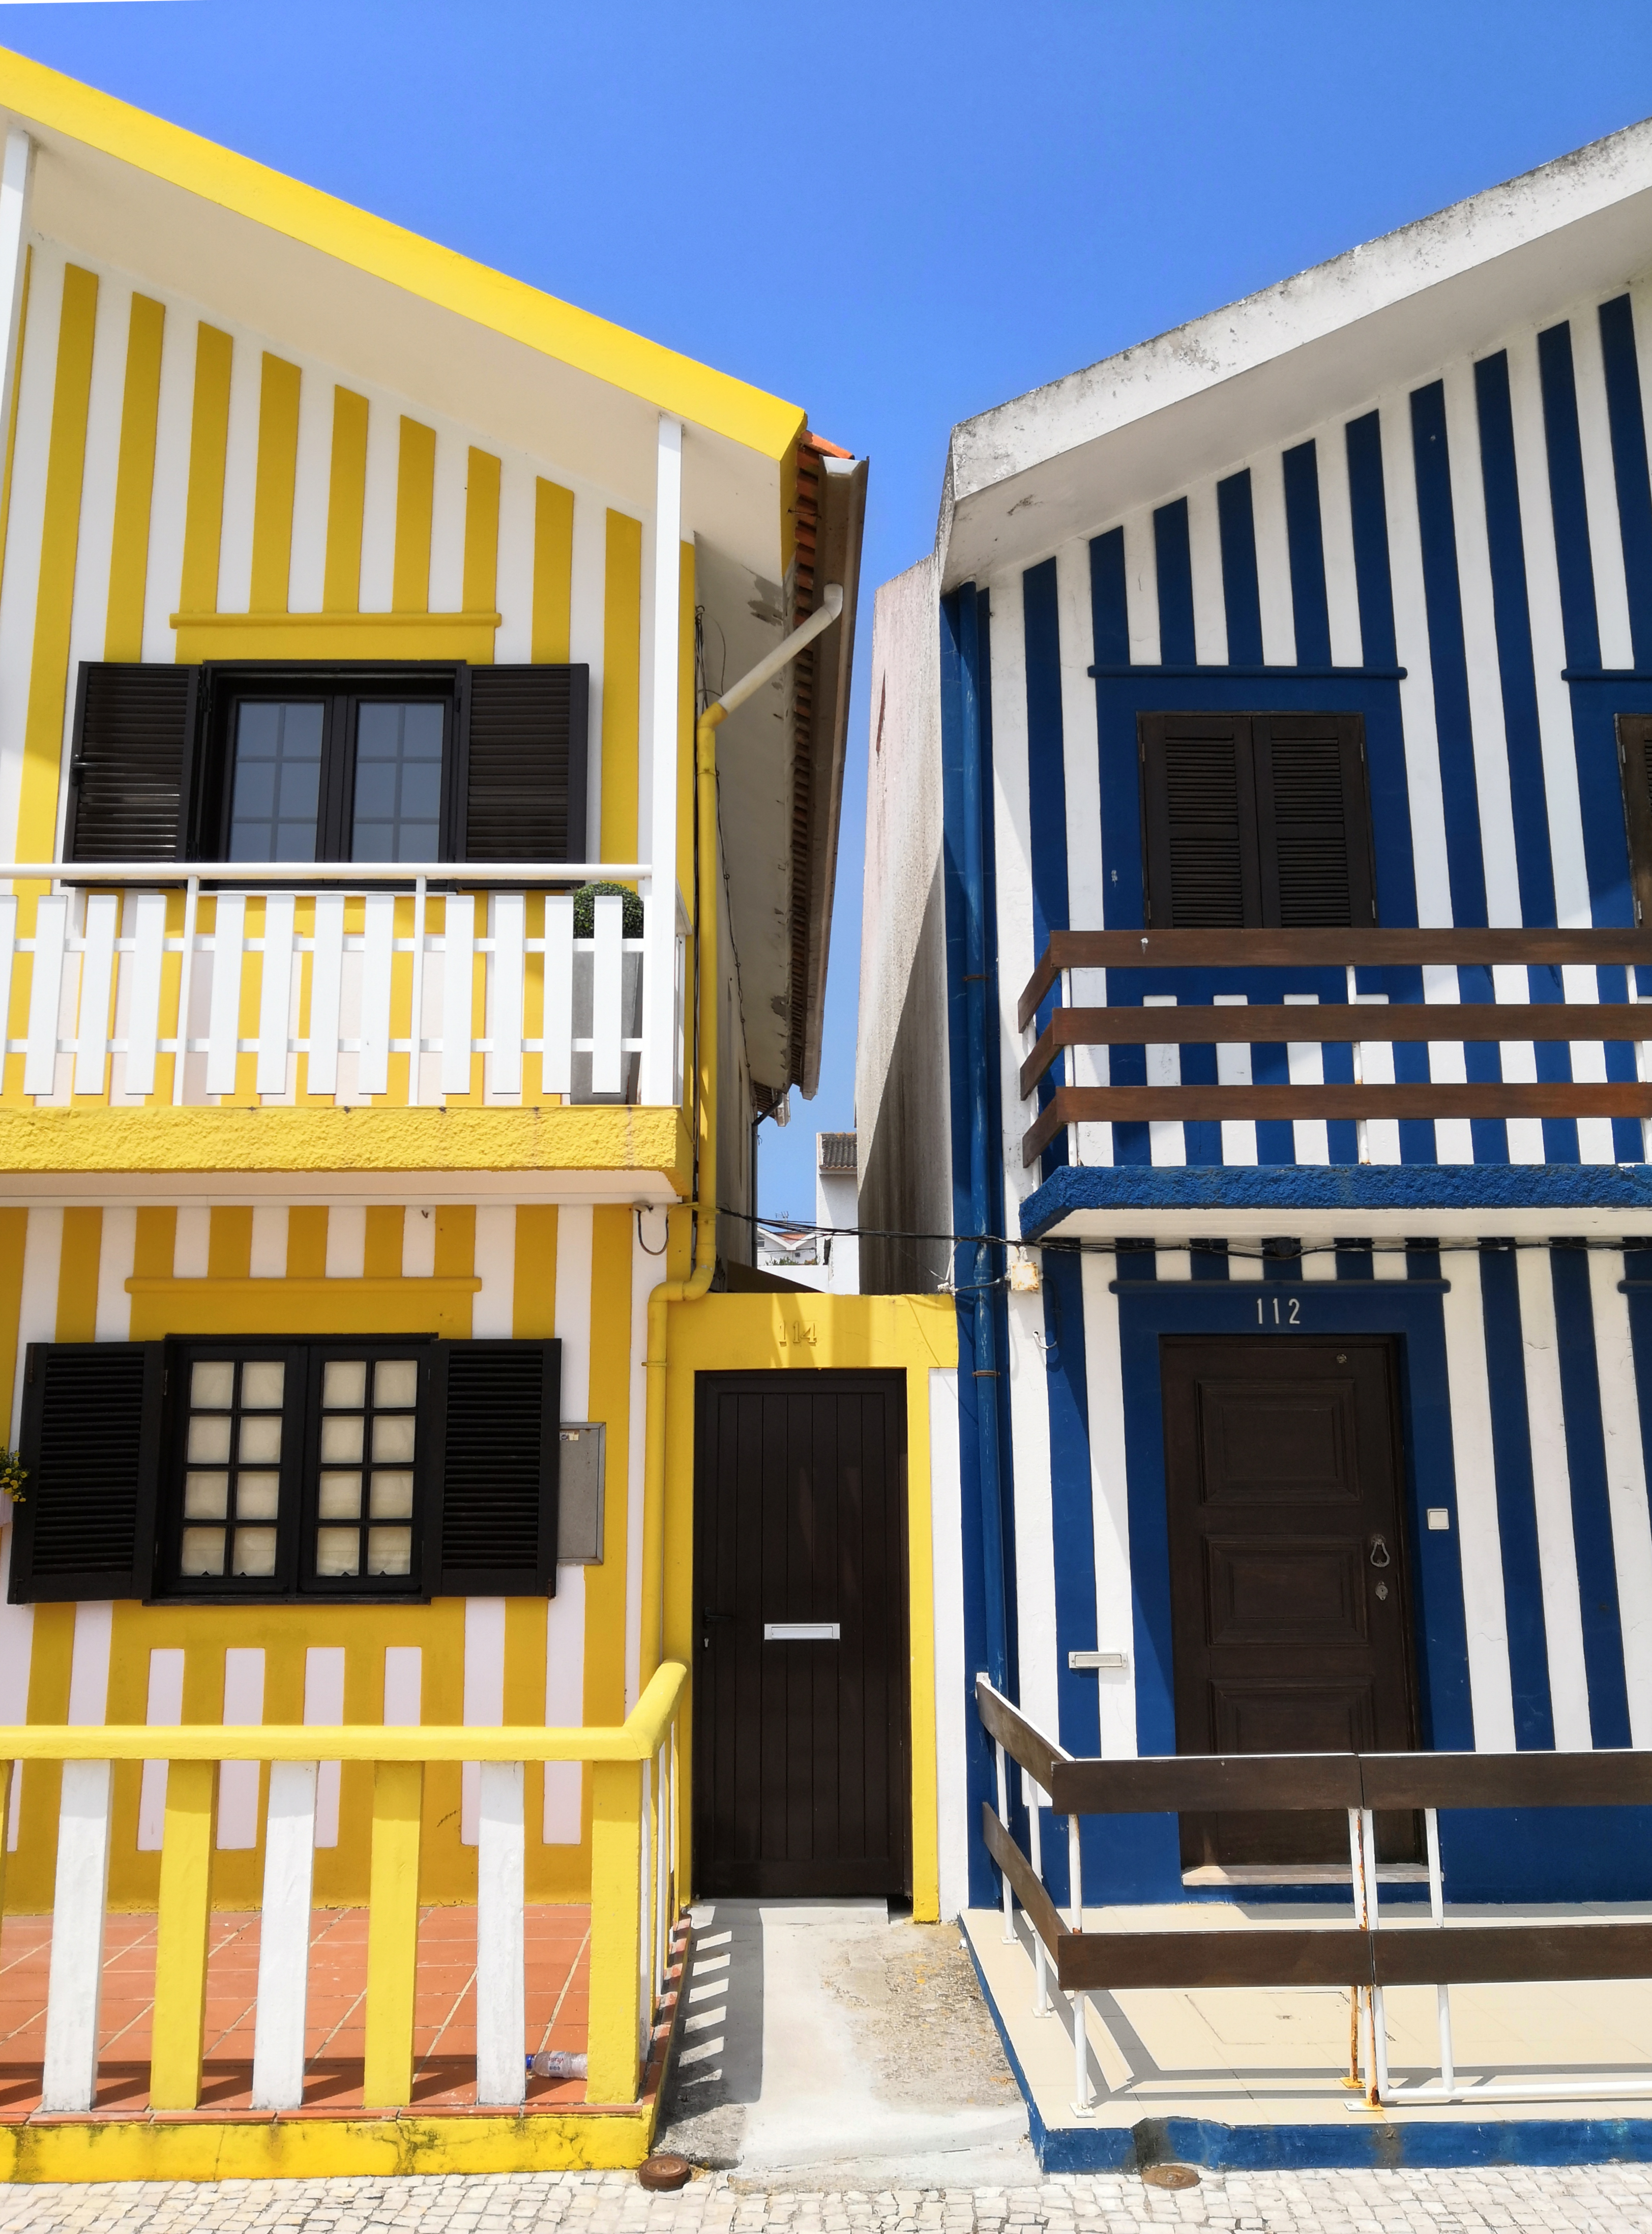 yellow and blue houses showing closed door